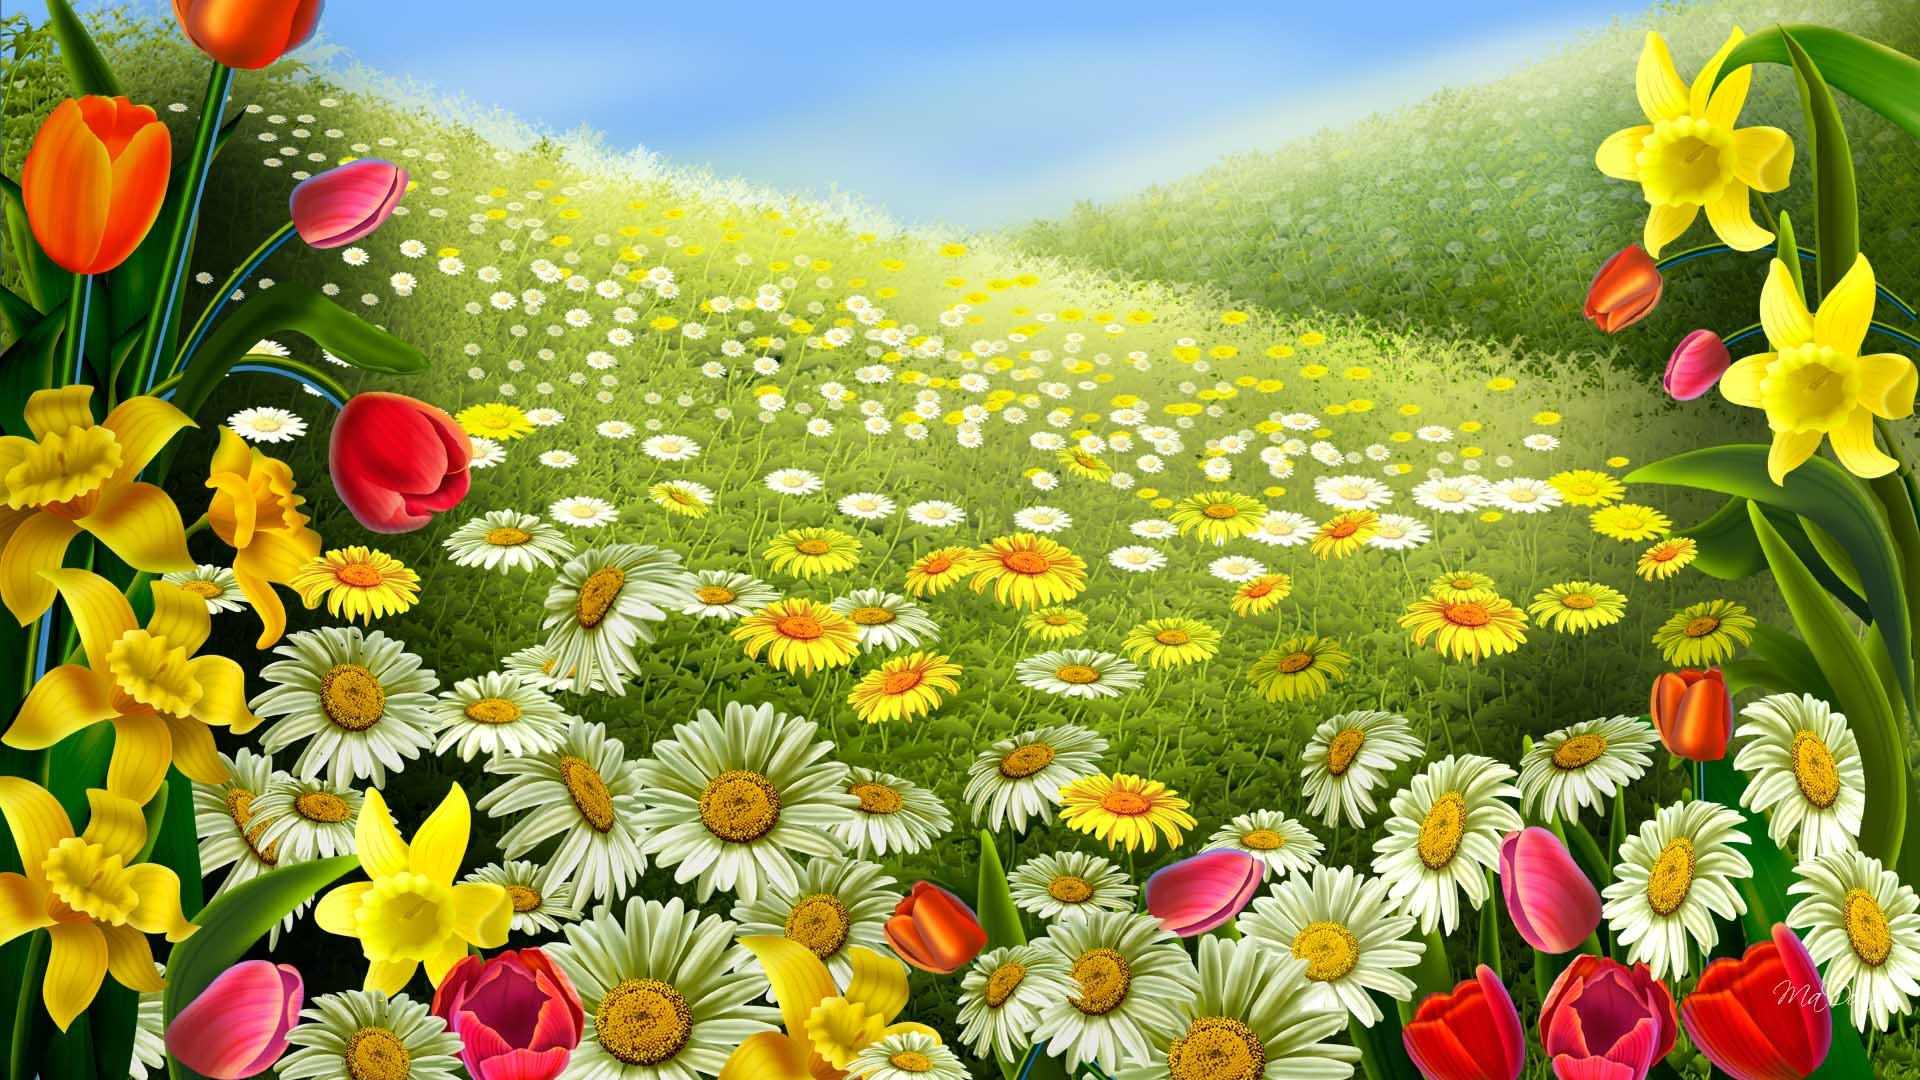 Spring wallpapers HD free download (60+).